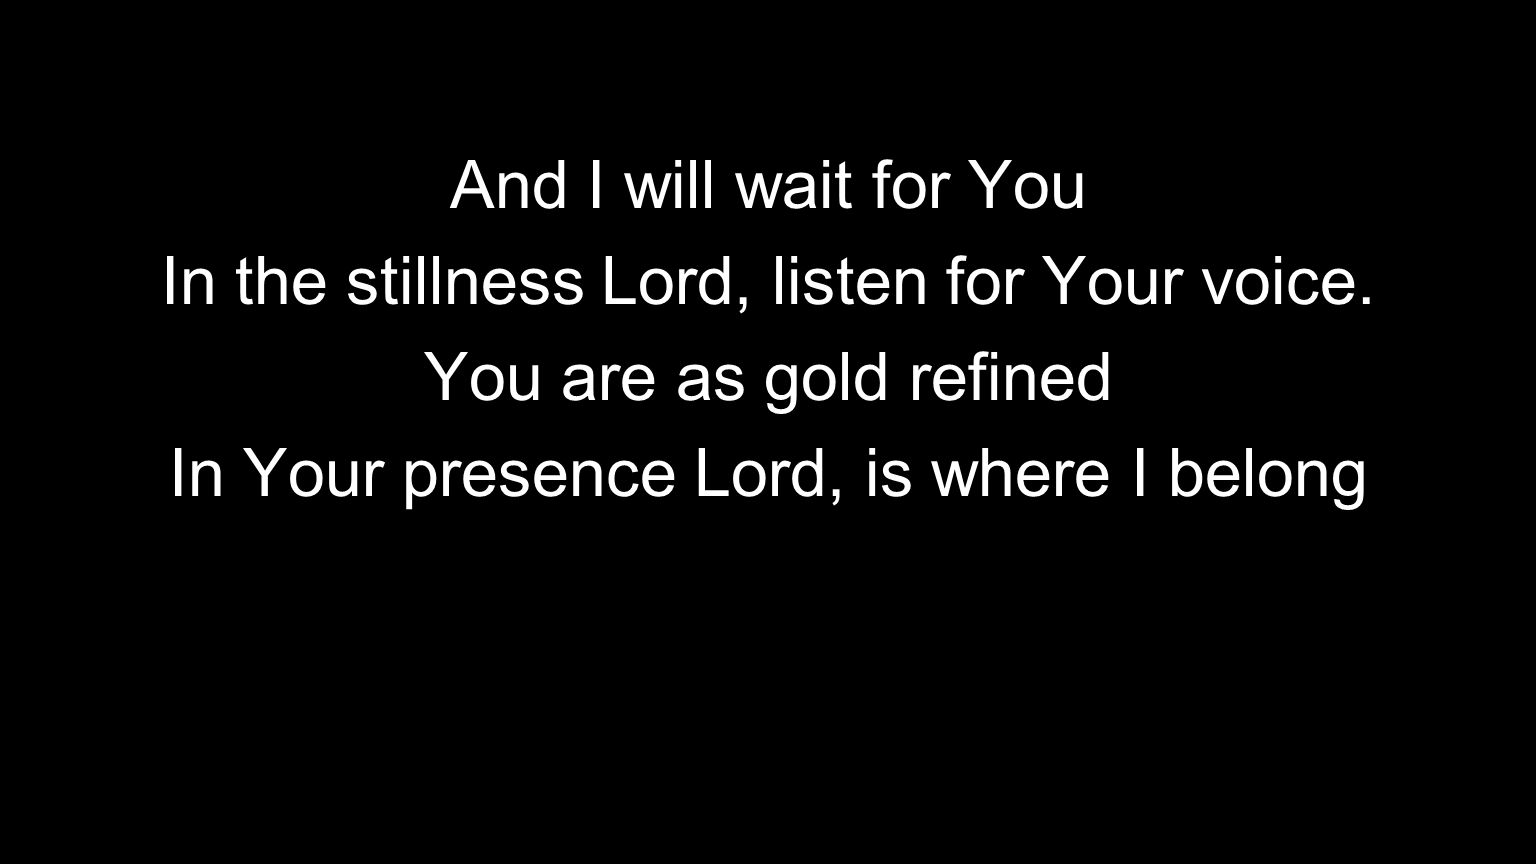 And I will wait for You In the stillness Lord, listen for Your voice. You are as gold refined In Your presence Lord, is where I belong